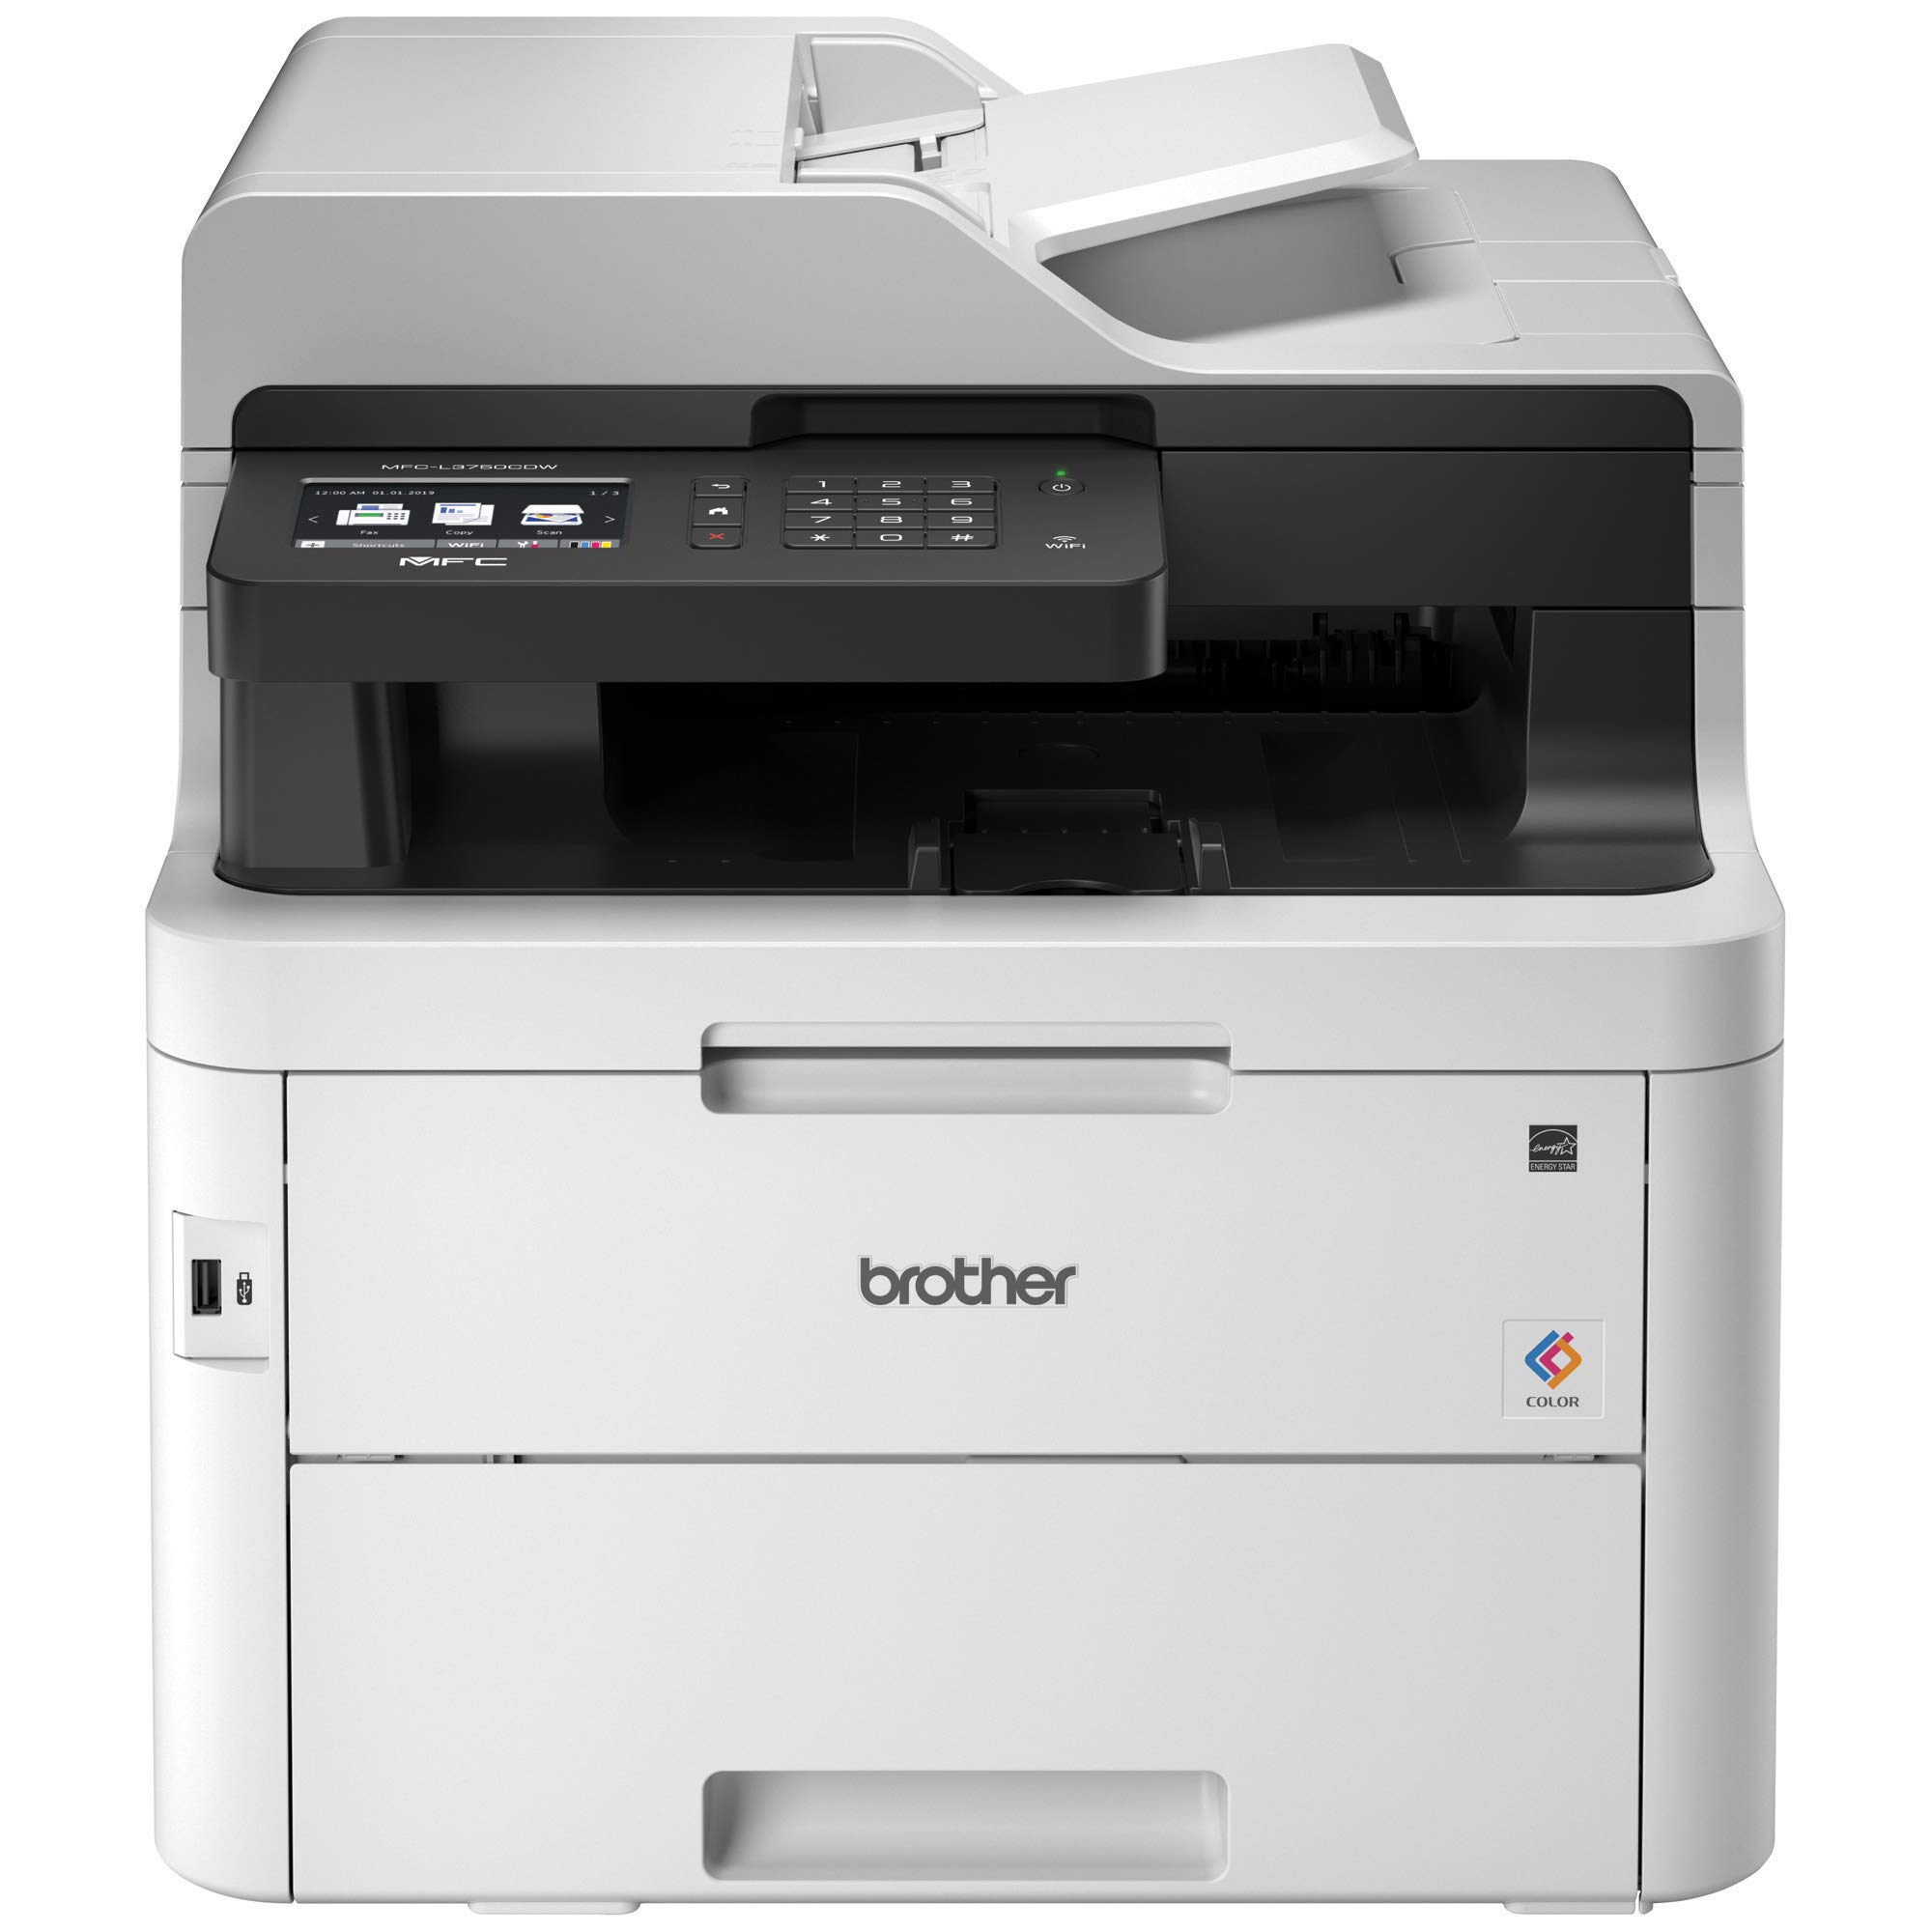 Brother MFC-L3750CDW Digital Color All-in-One Printer, Laser Printer Quality, Wireless Printing, Duplex Printing, Amazon Dash Replenishment Enabled by Brother